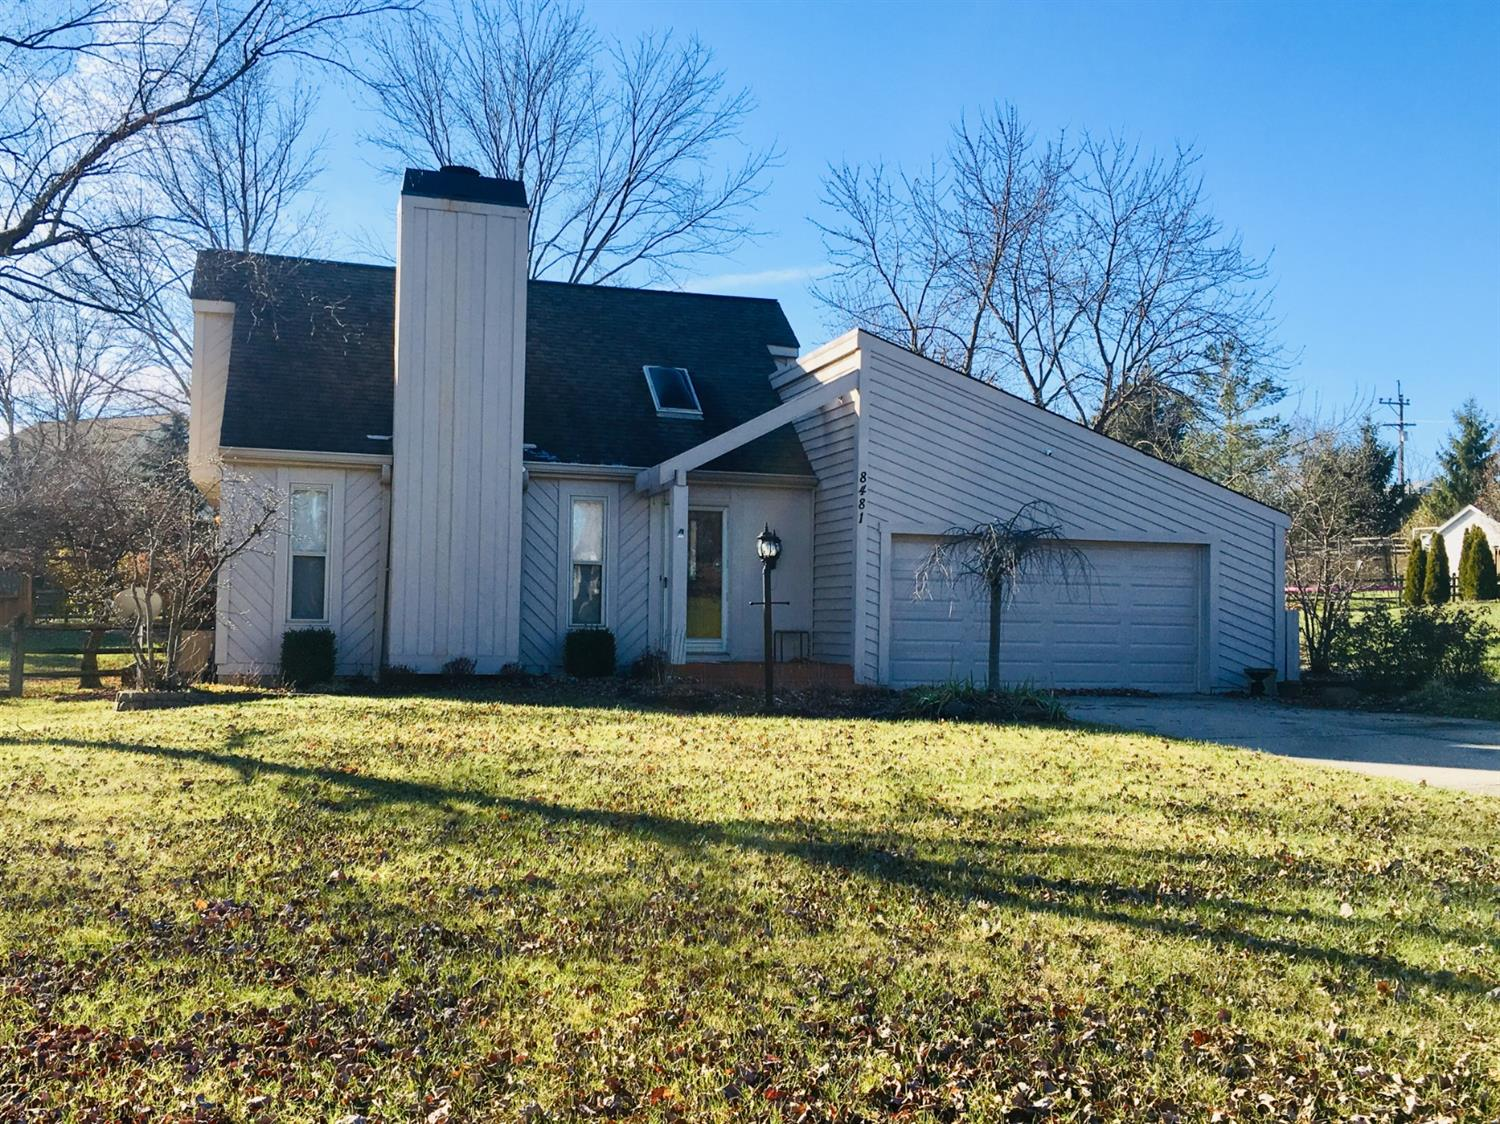 8481 Sunbright Dr Colerain Twp.West, OH